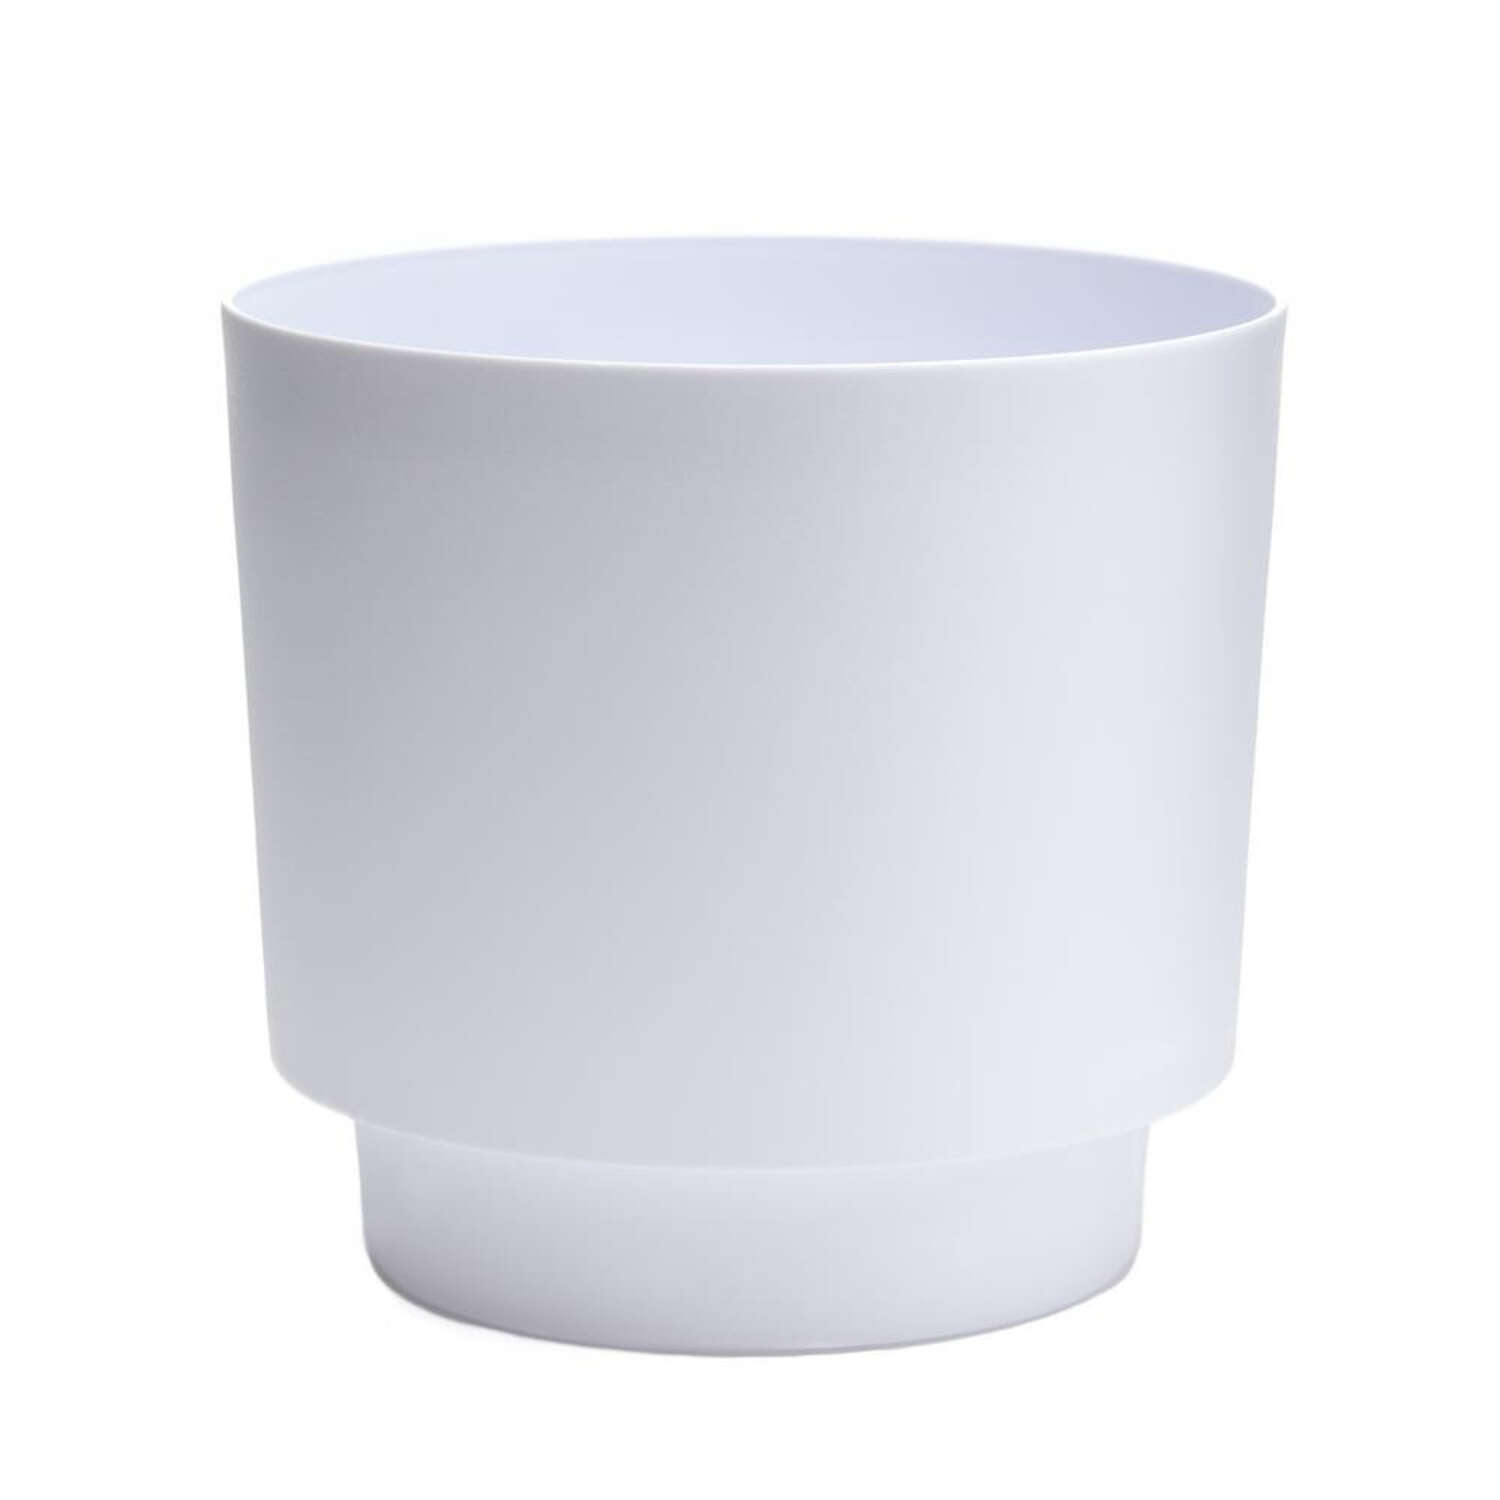 Bloem  Hopson  8 in. H x 6 in. Dia. Resin  Planter with Stand  Casper White